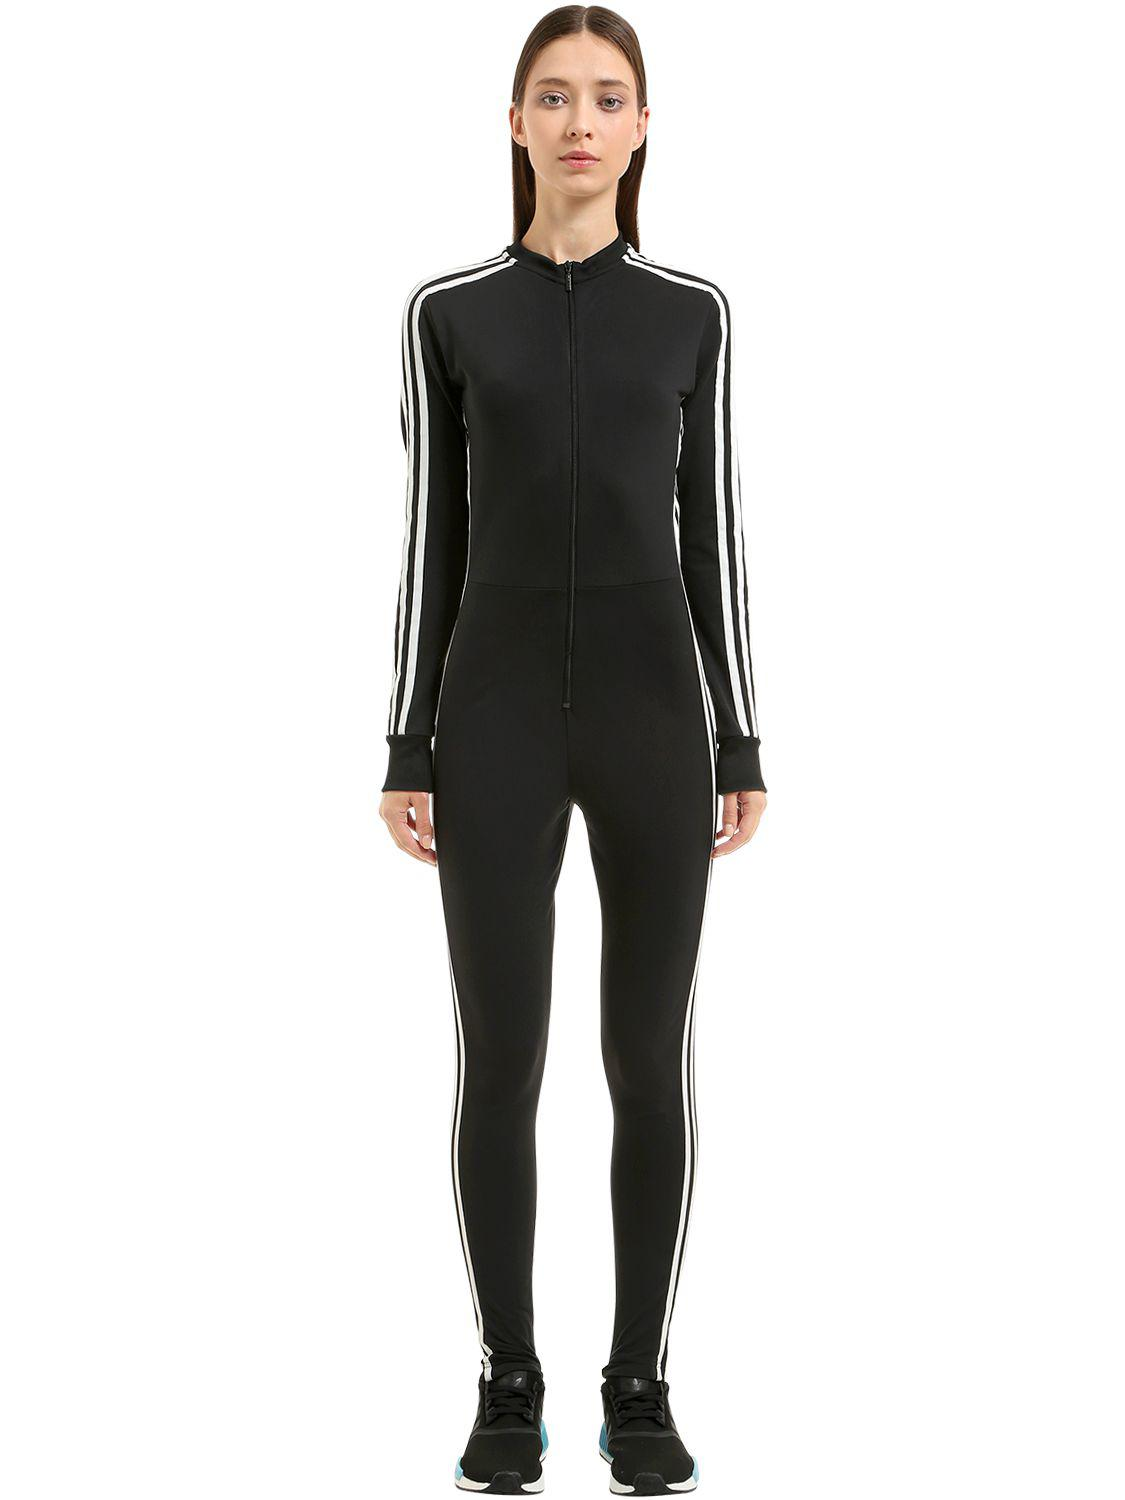 Lyst Adidas Originals Stage 3 Stripes Tricot Jumpsuit In